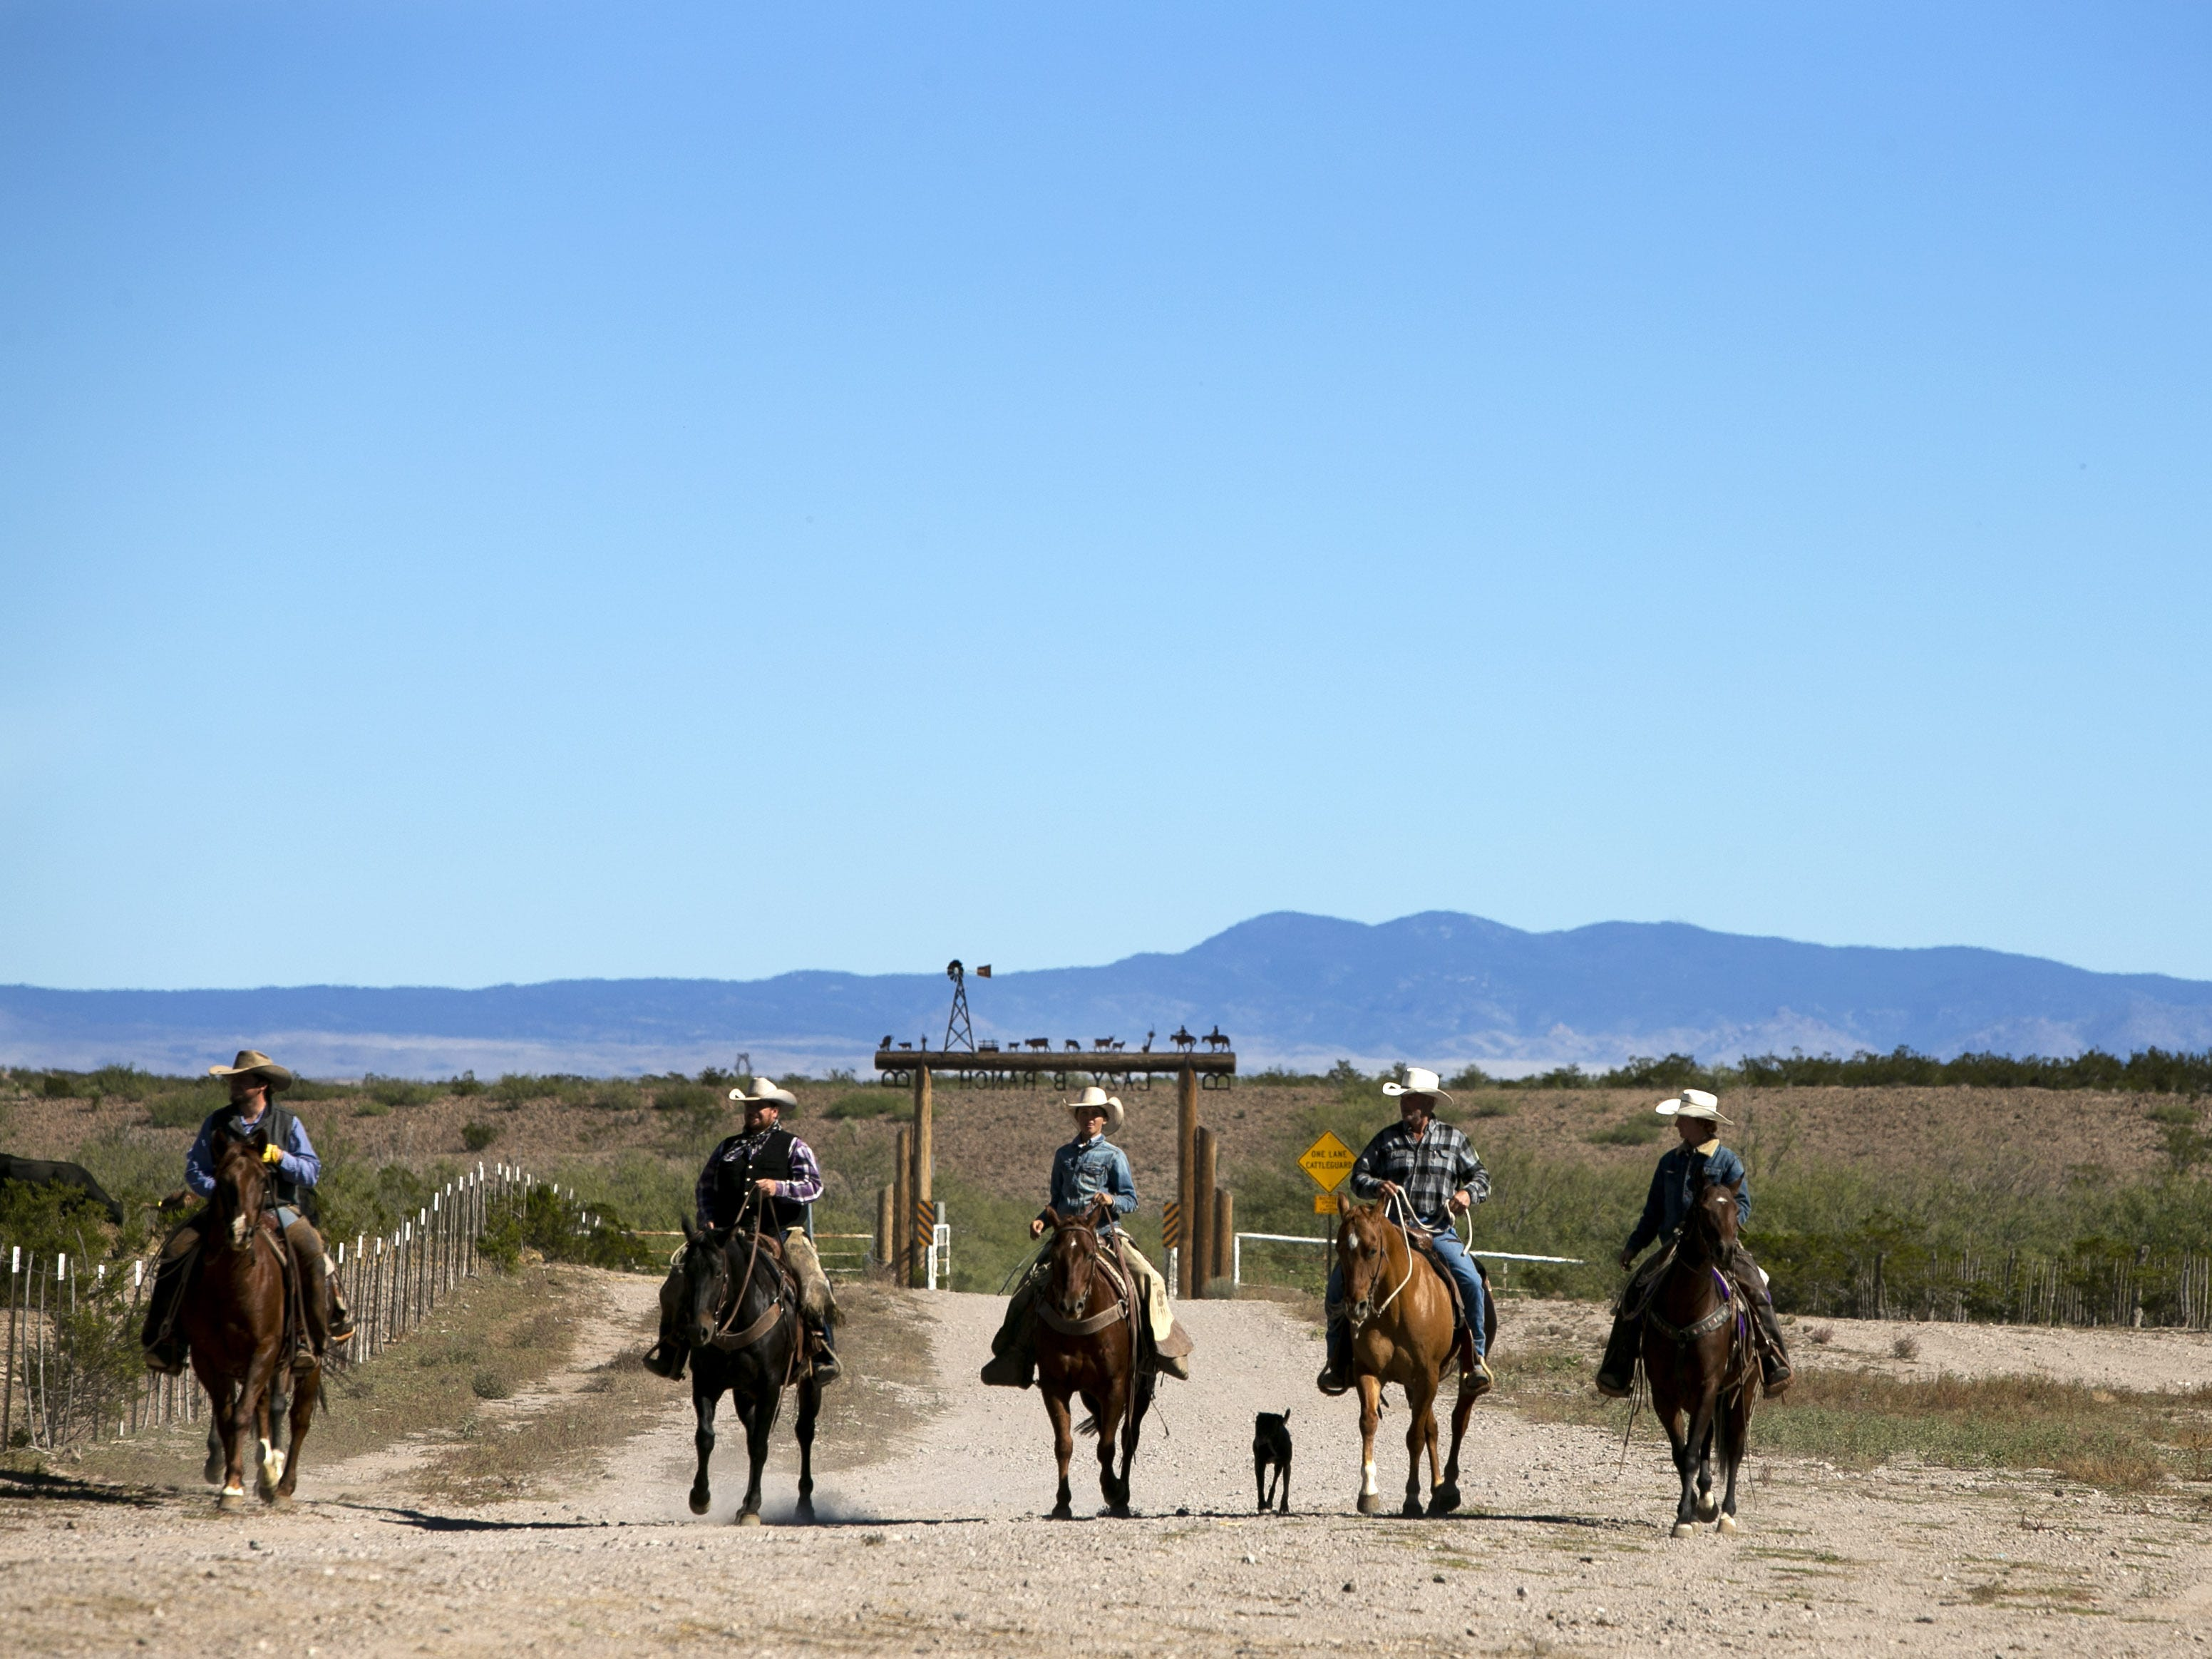 Cowboys at the Lazy B Ranch outside of Duncan, Ariz., on Nov. 2, 2018. Former Supreme Court Justice Sandra Day O'Connor grew up on the ranch.